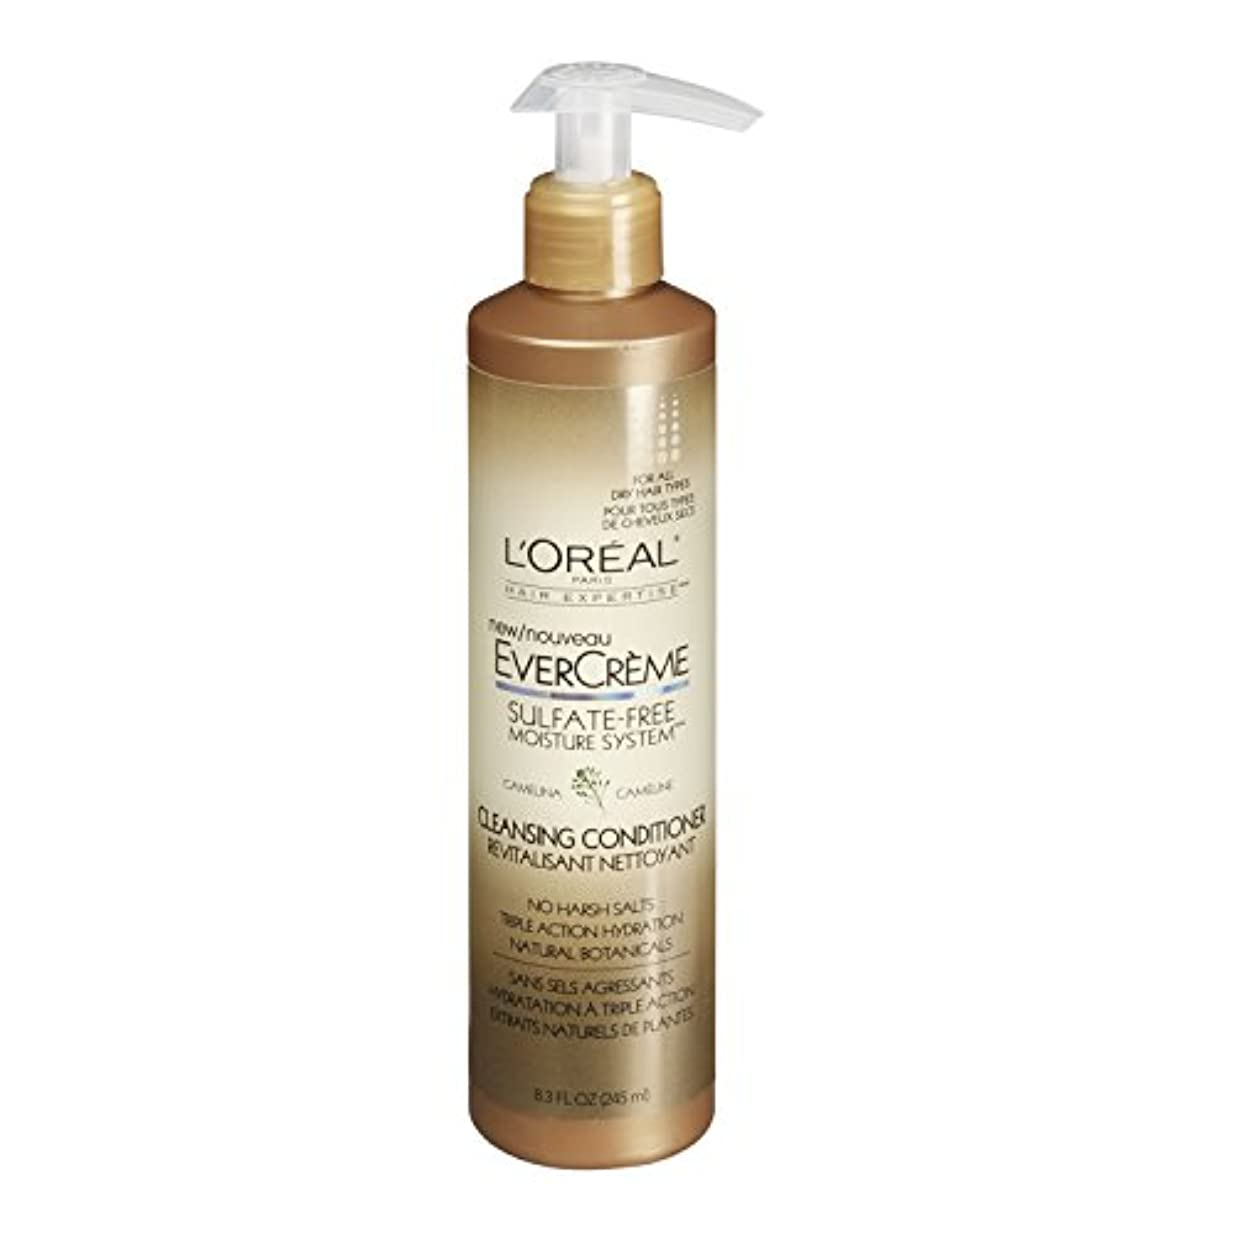 付録カジュアル衝突L'Oreal Paris EverCreme Sulfate-Free Moisture System Cleansing Conditioner, 8.3 fl. Oz. by L'Oreal Paris Hair...